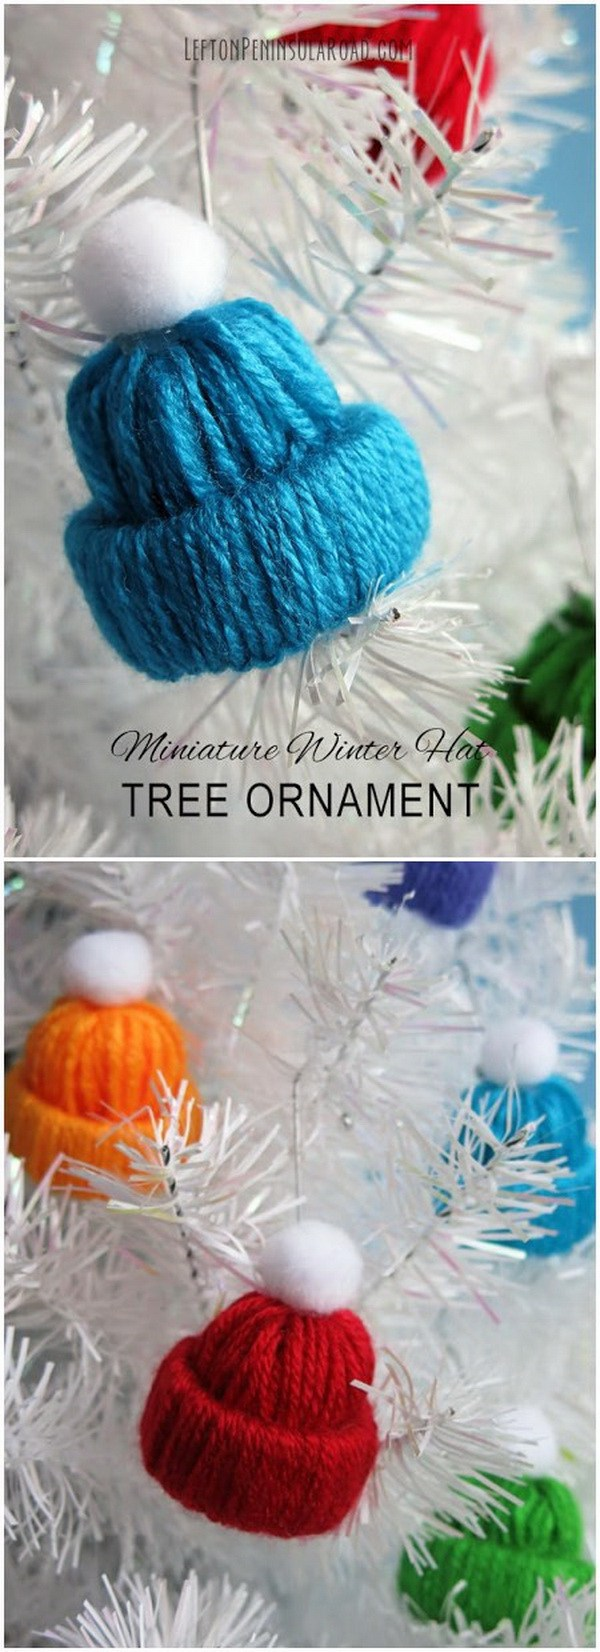 IY Cute Yarn Hat Christmas Ornaments.